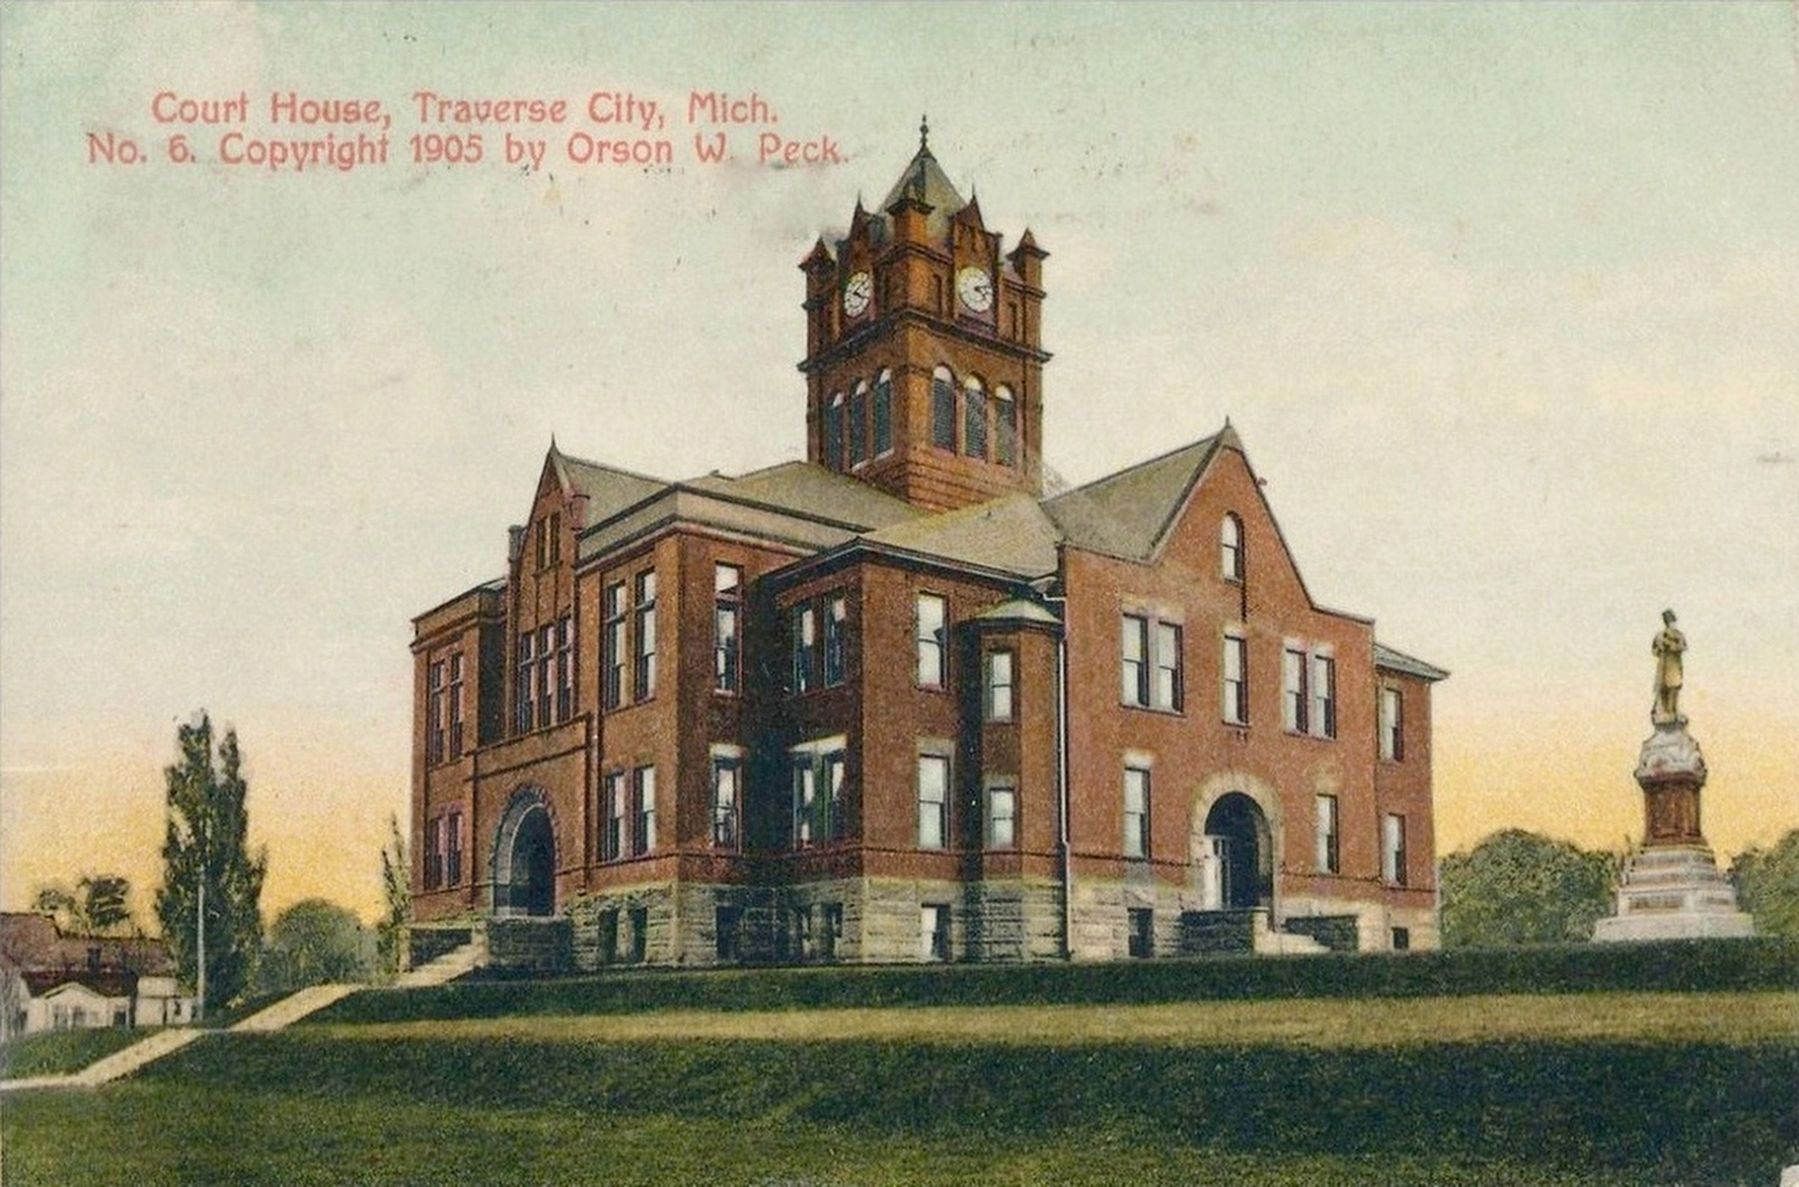 <i>Court House, Traverse City, Mich.</i> image. Click for full size.